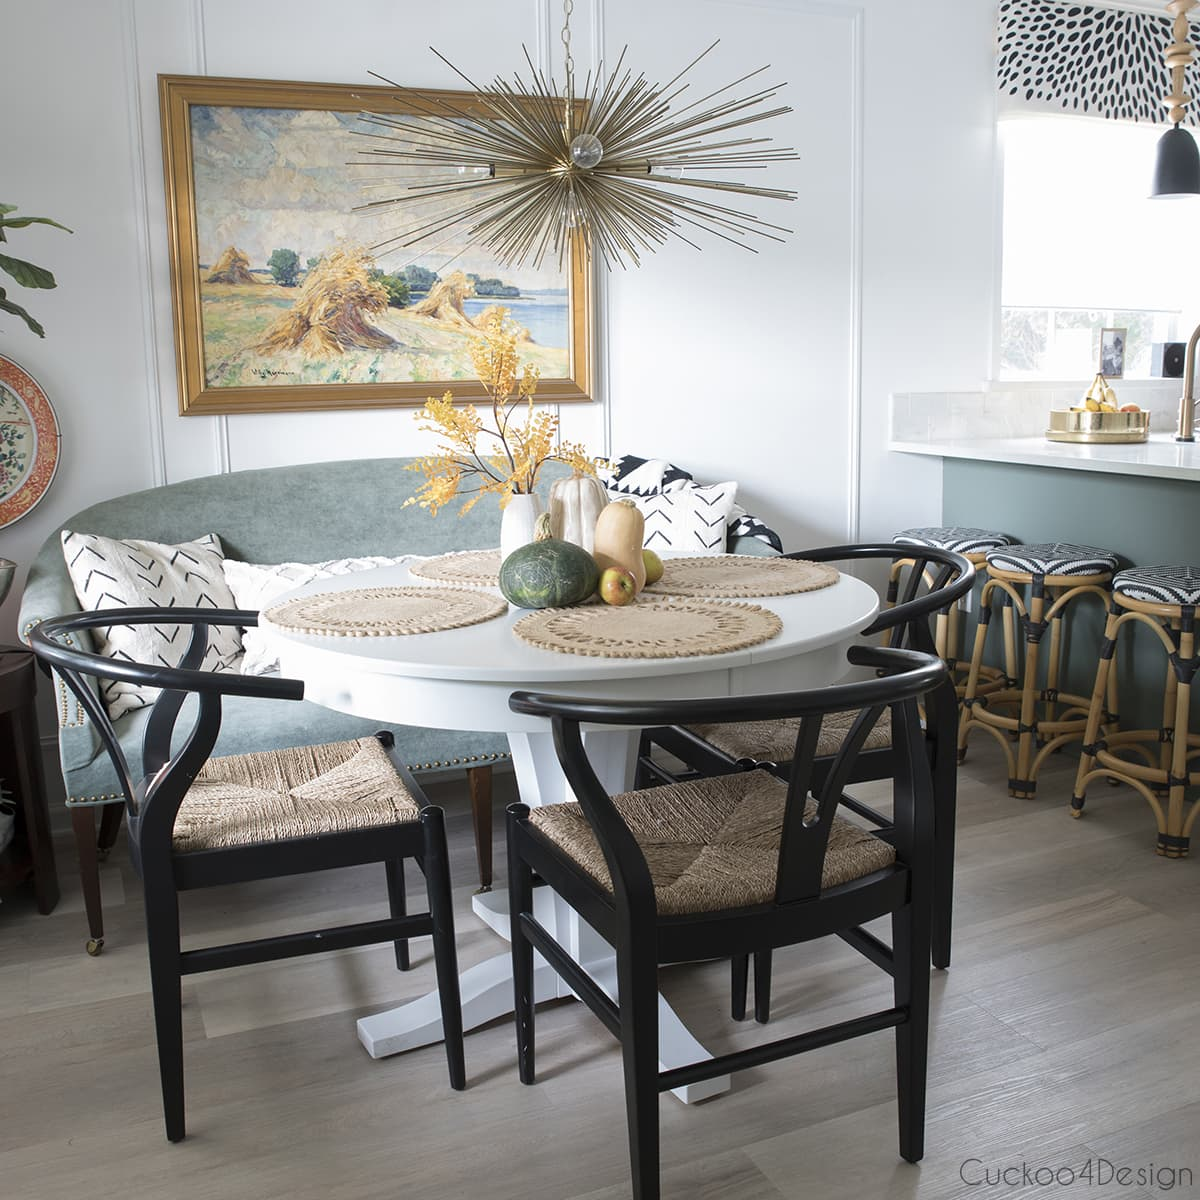 wishbone chairs in green eat-in-kitchen with modern touches and family heirlooms